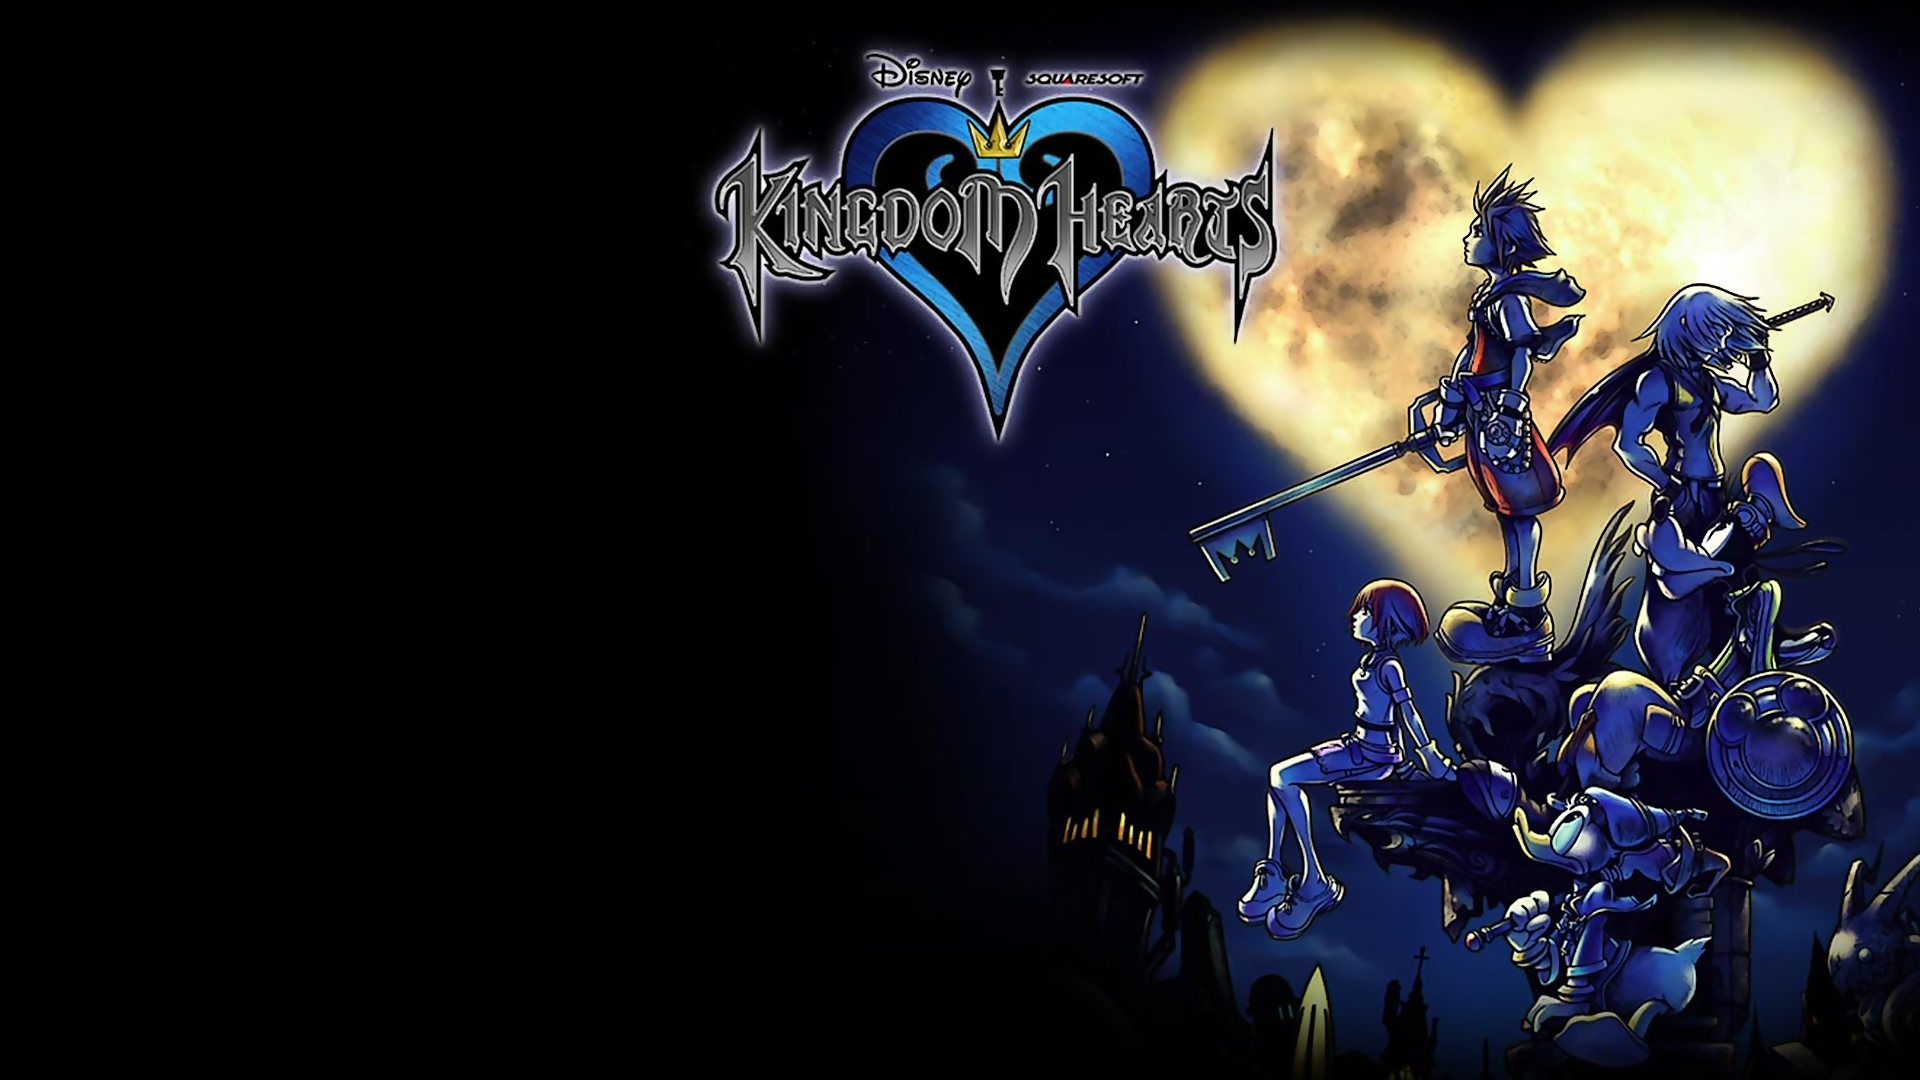 kingdom hearts wallpapers, 39 kingdom hearts android compatible